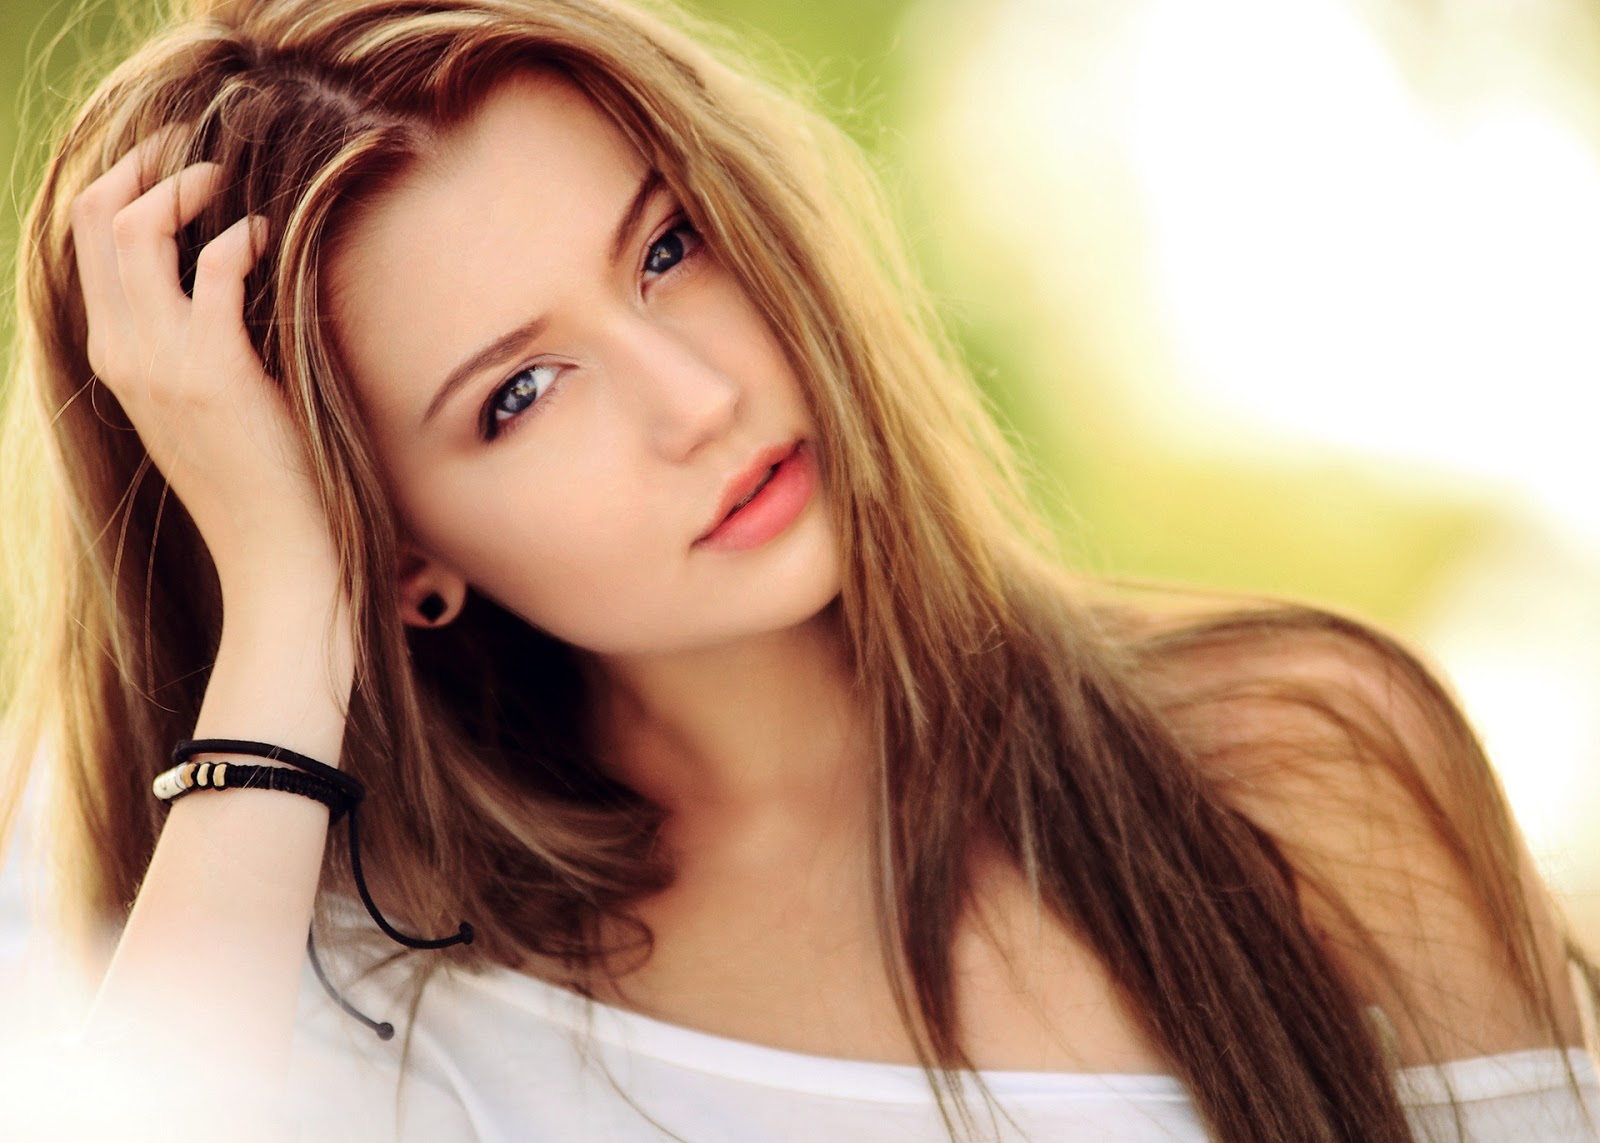 Take 8 beautiful secrets for beautiful face and skin, do not need to go to the parlor